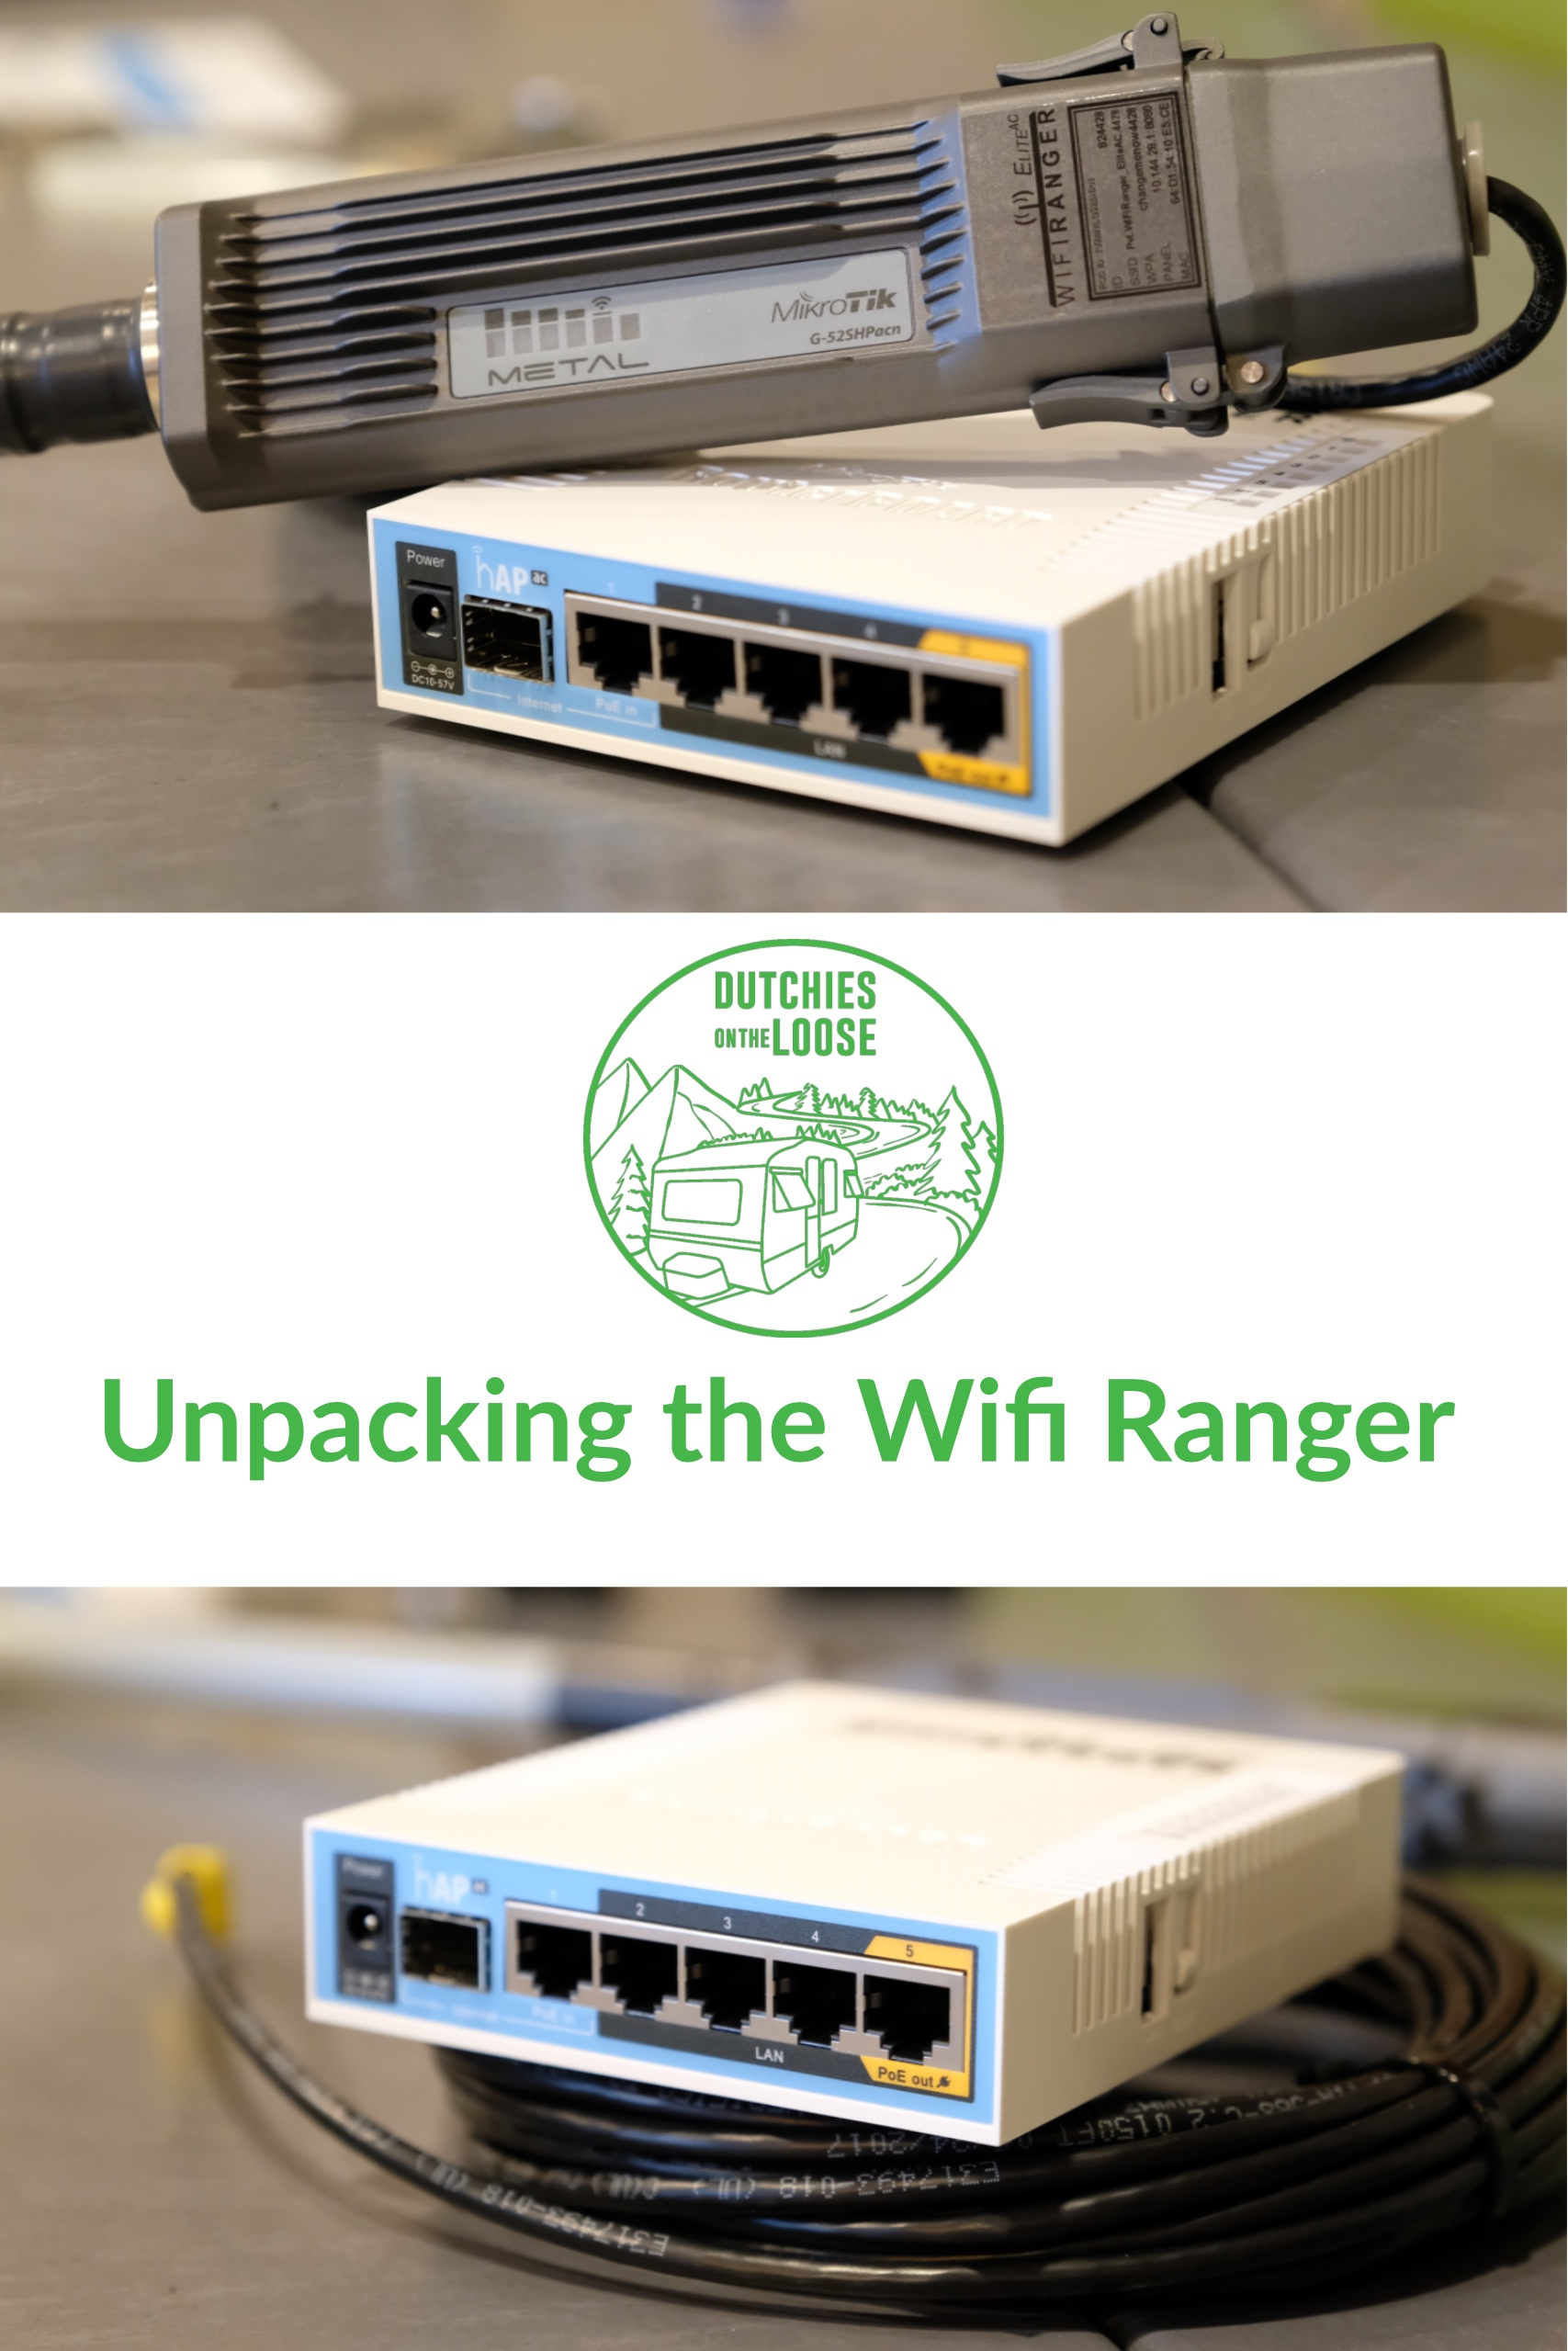 Unpacking Wifi Ranger